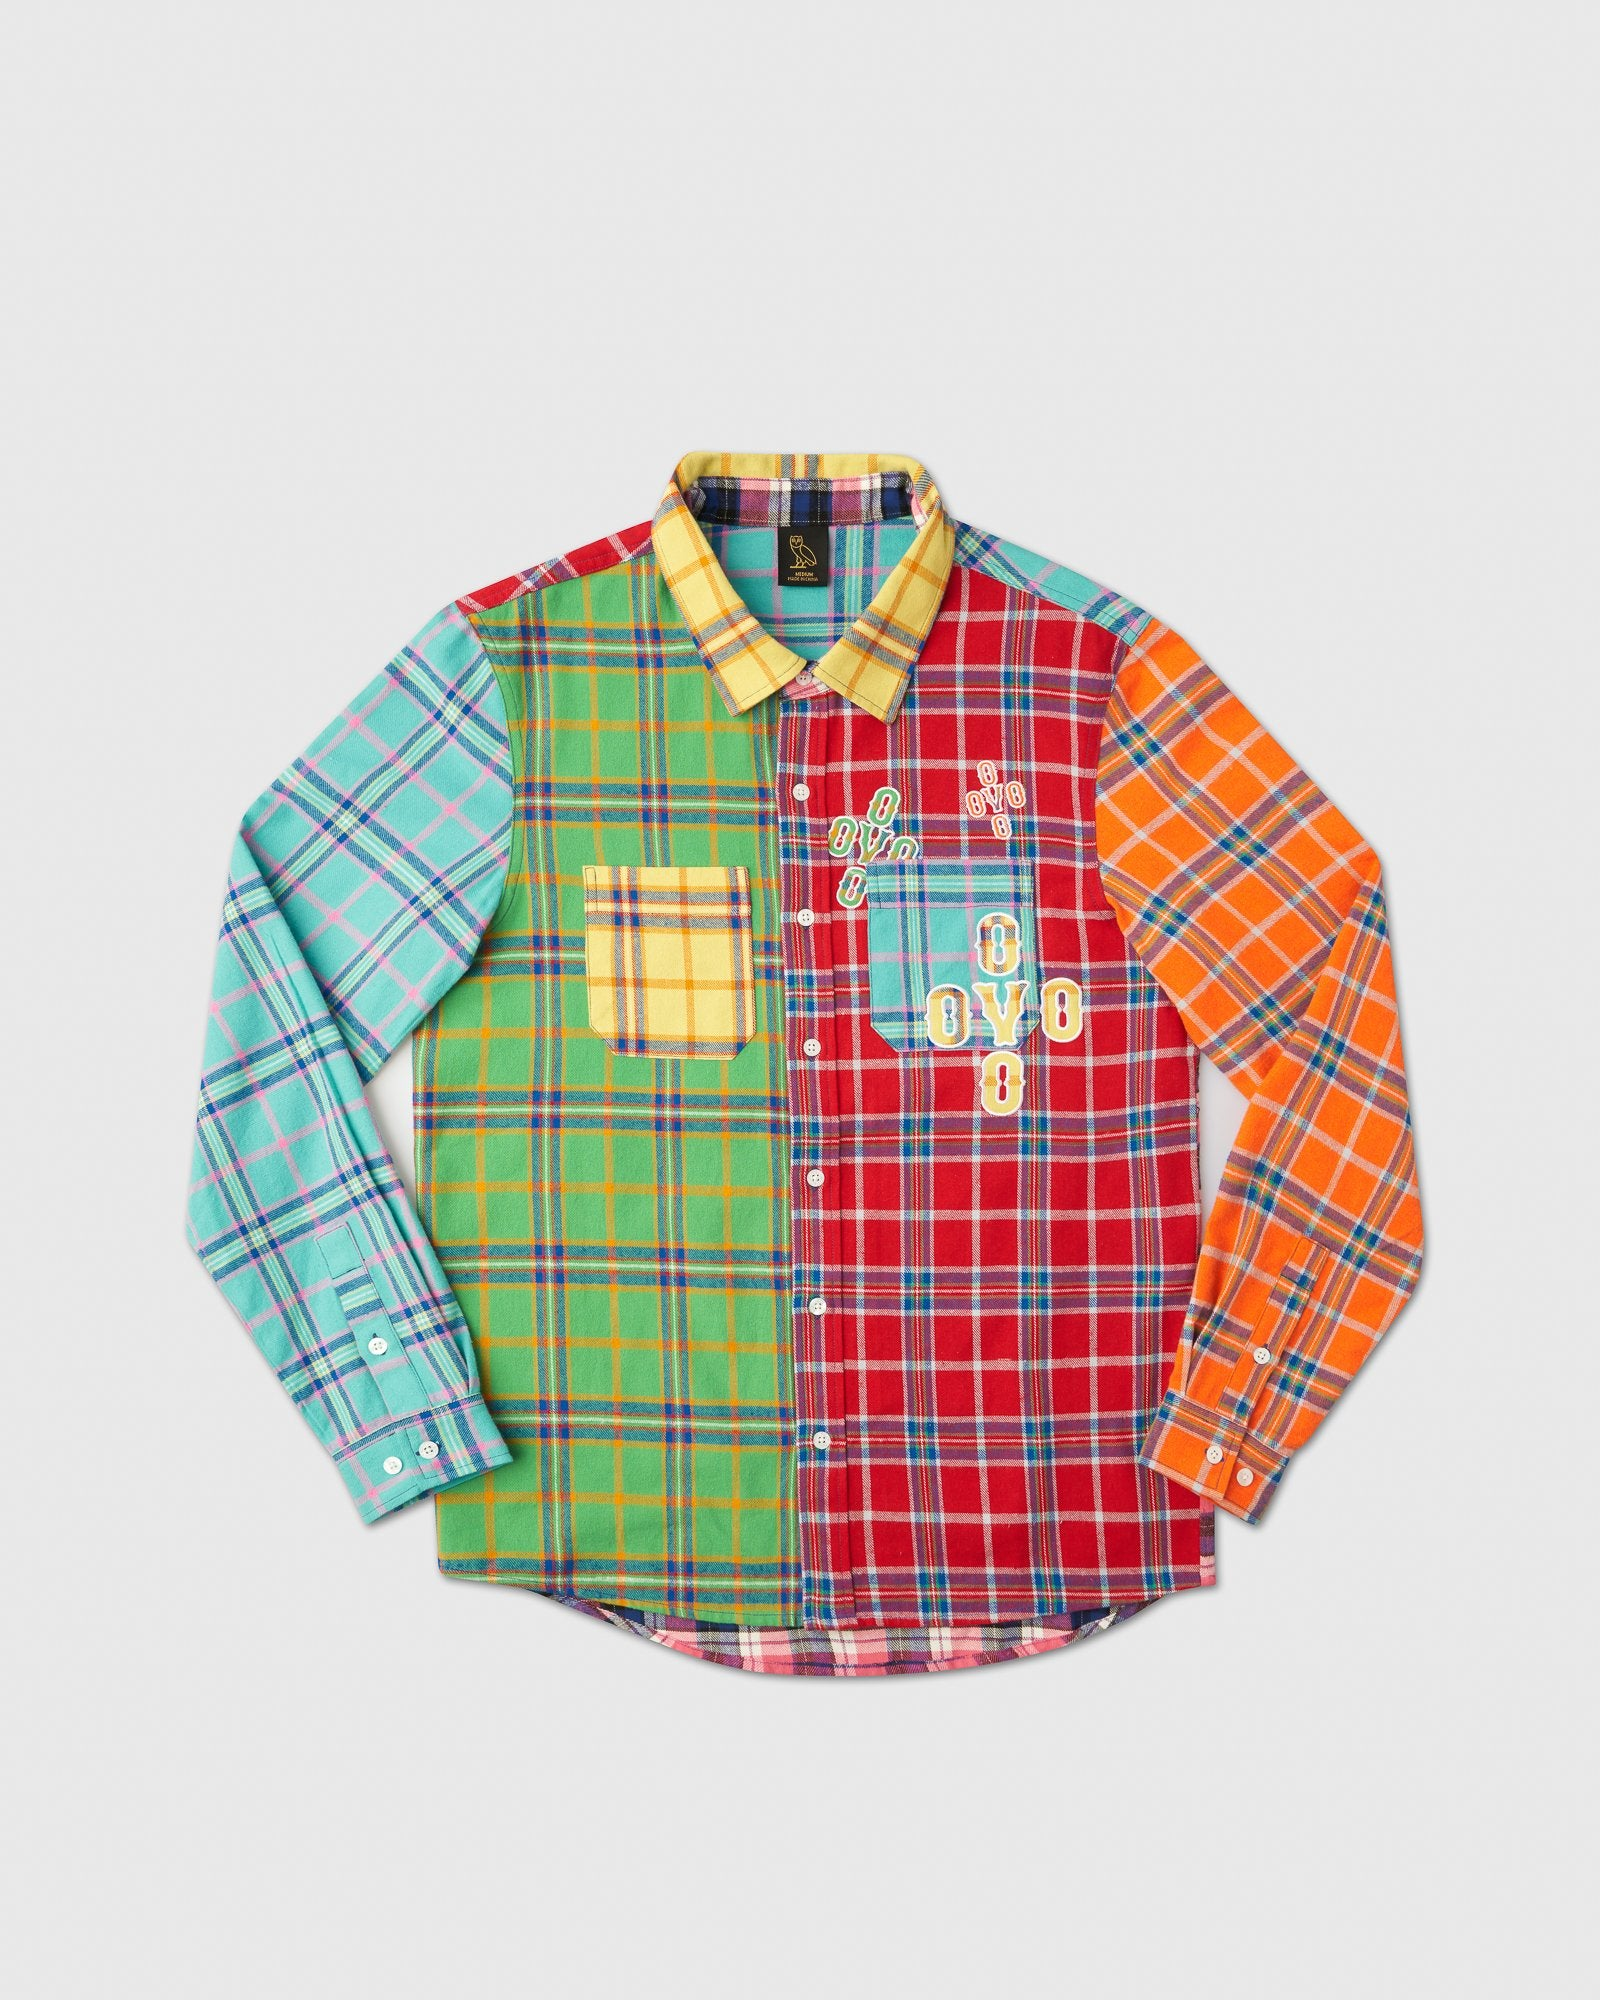 COLOUR BLOCK POM POM PLAID SHIRT - MULTI COLOUR IMAGE #1